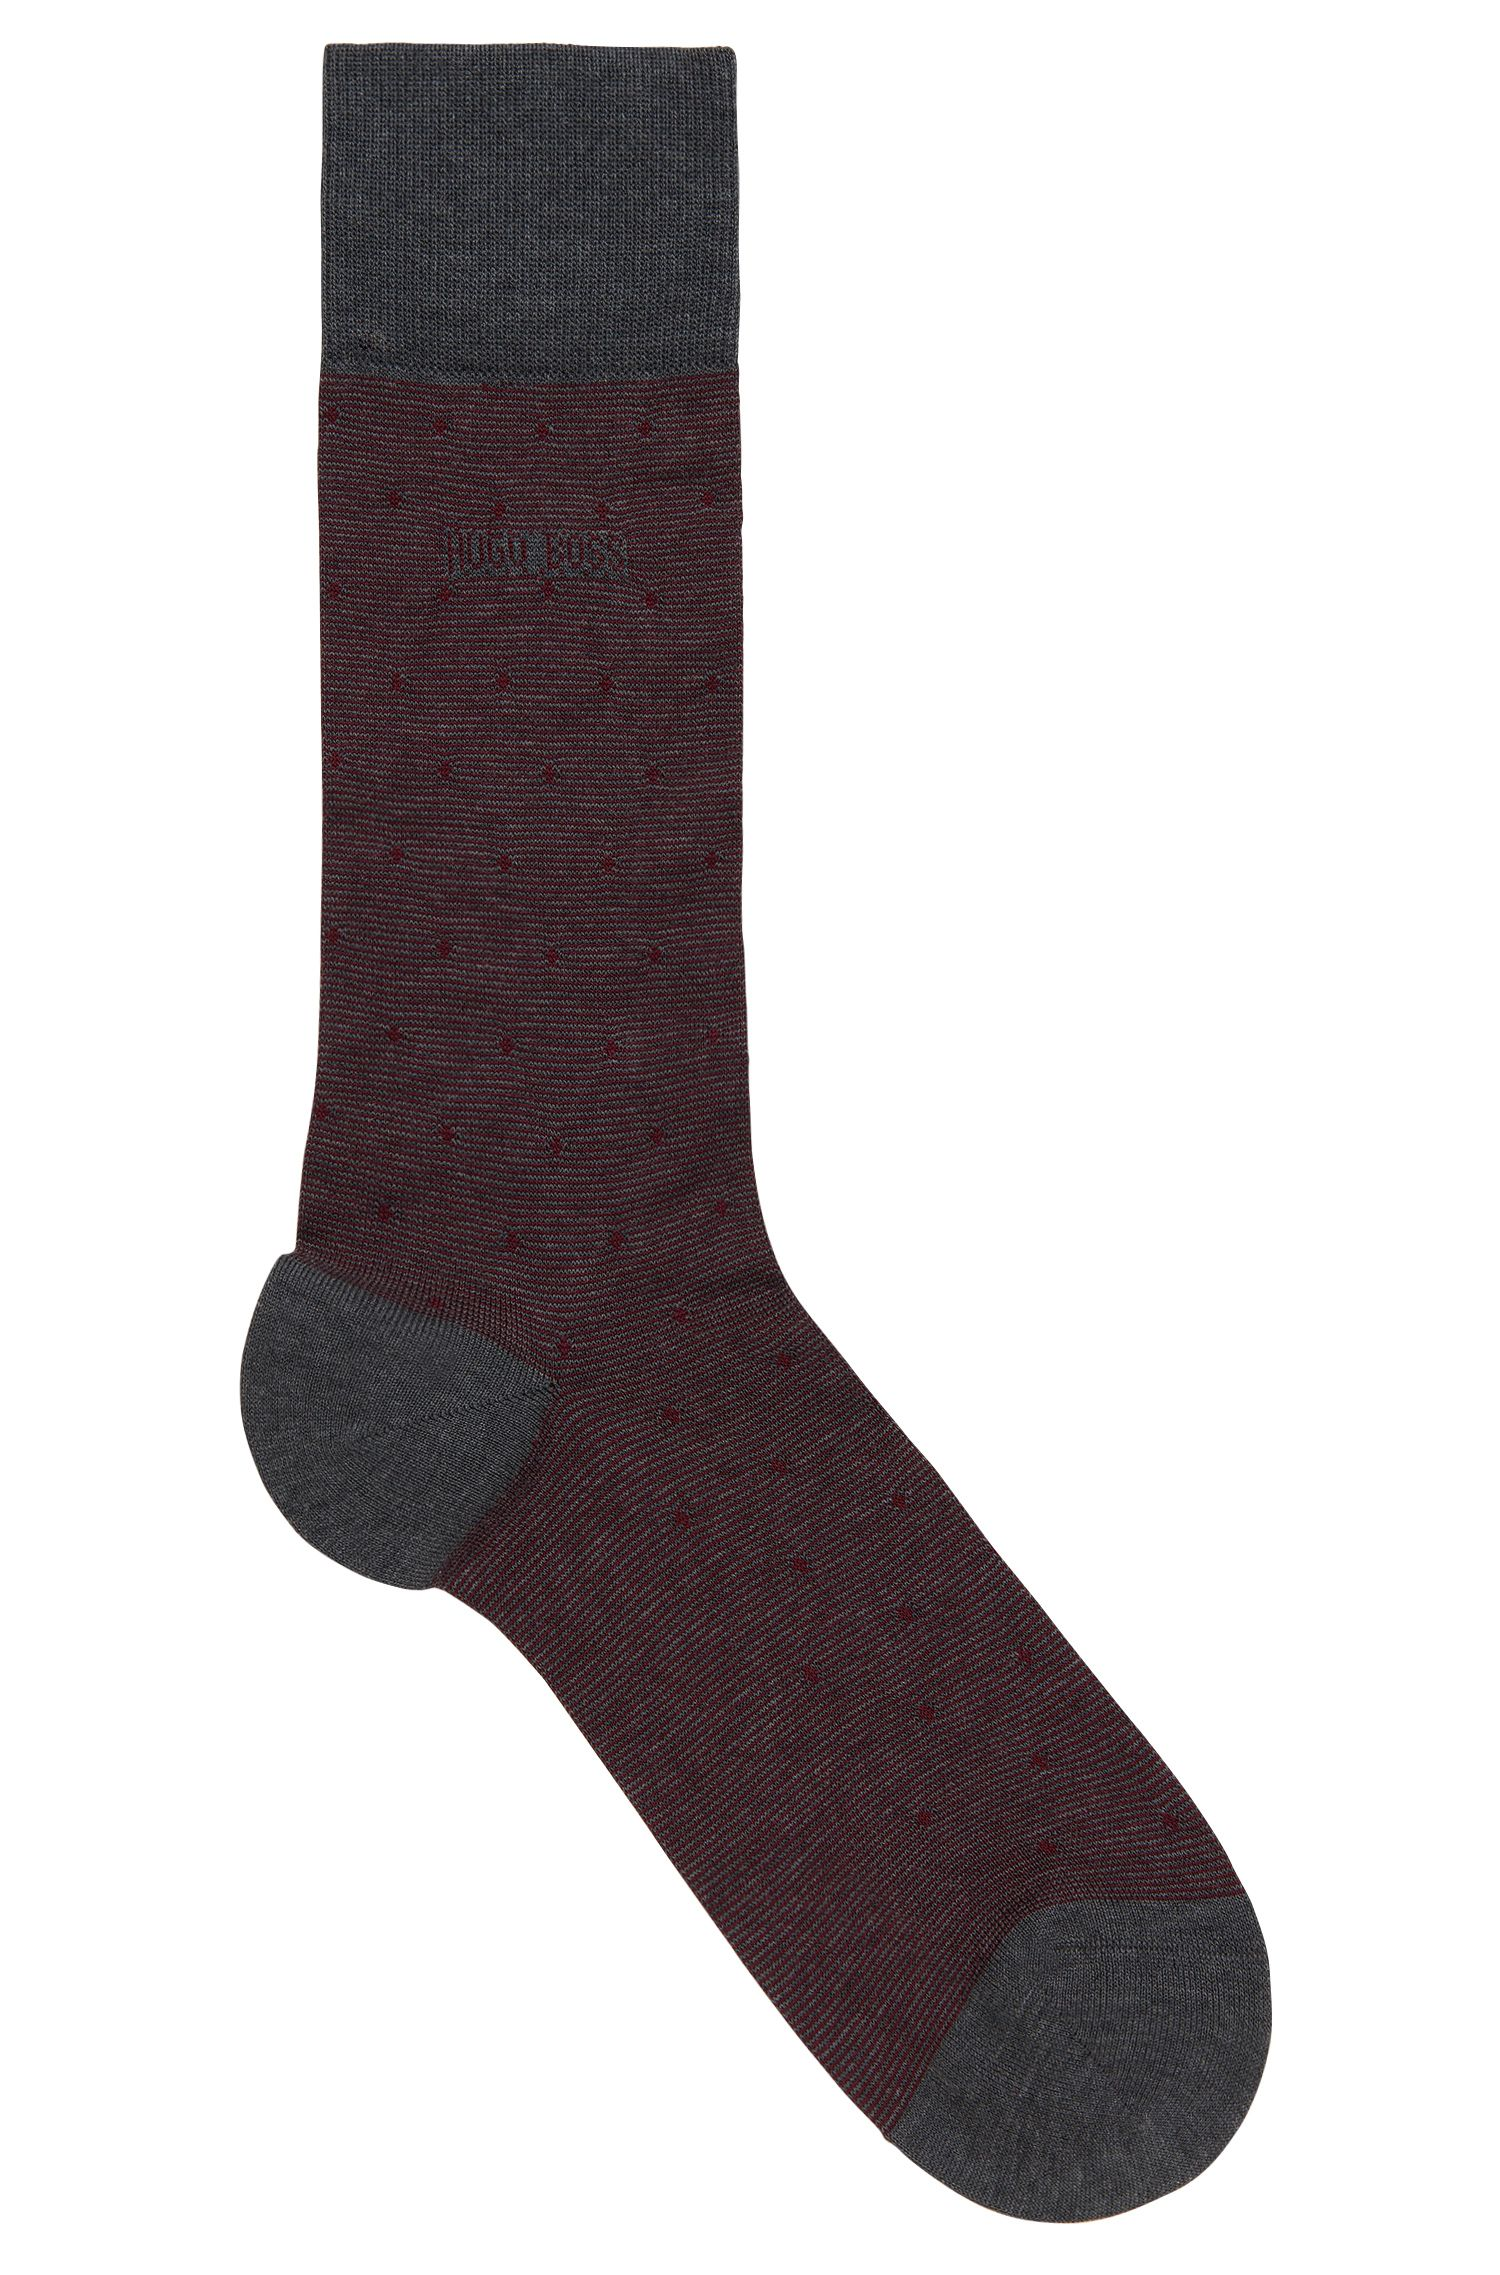 'Paul Design Dots US' | Stretch Mercerized Cotton Blend Socks